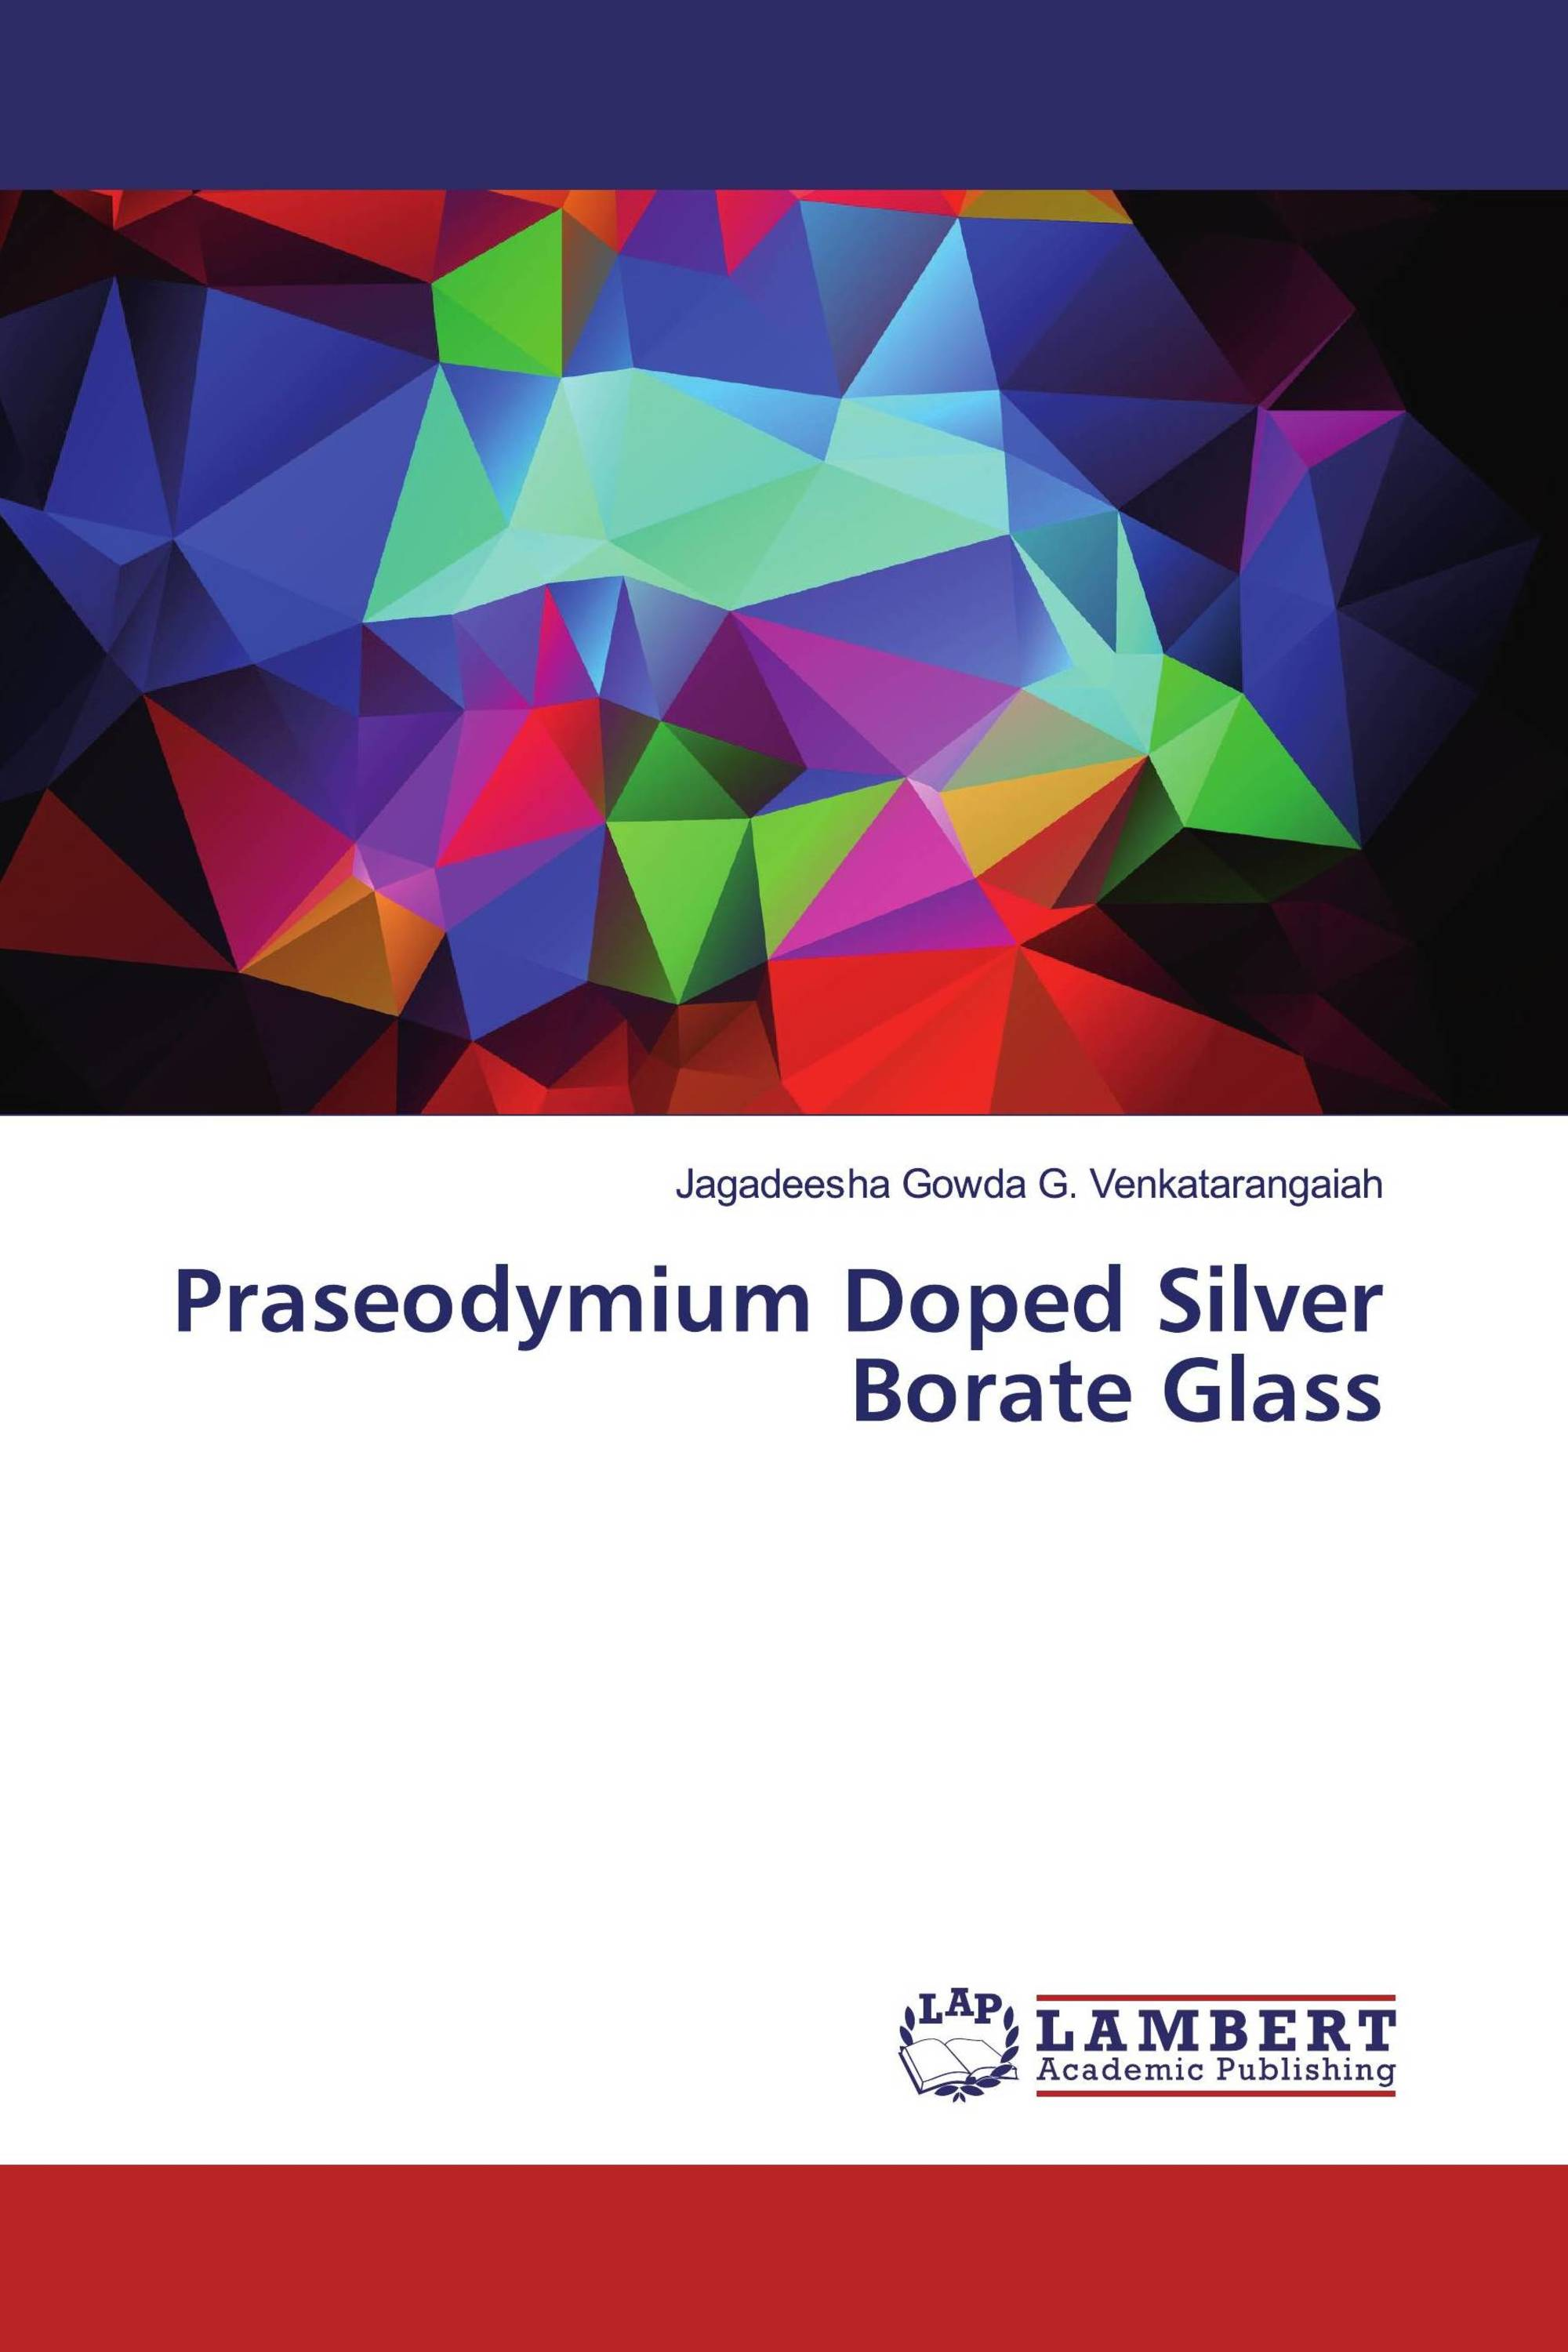 Praseodymium Doped Silver Borate Glass